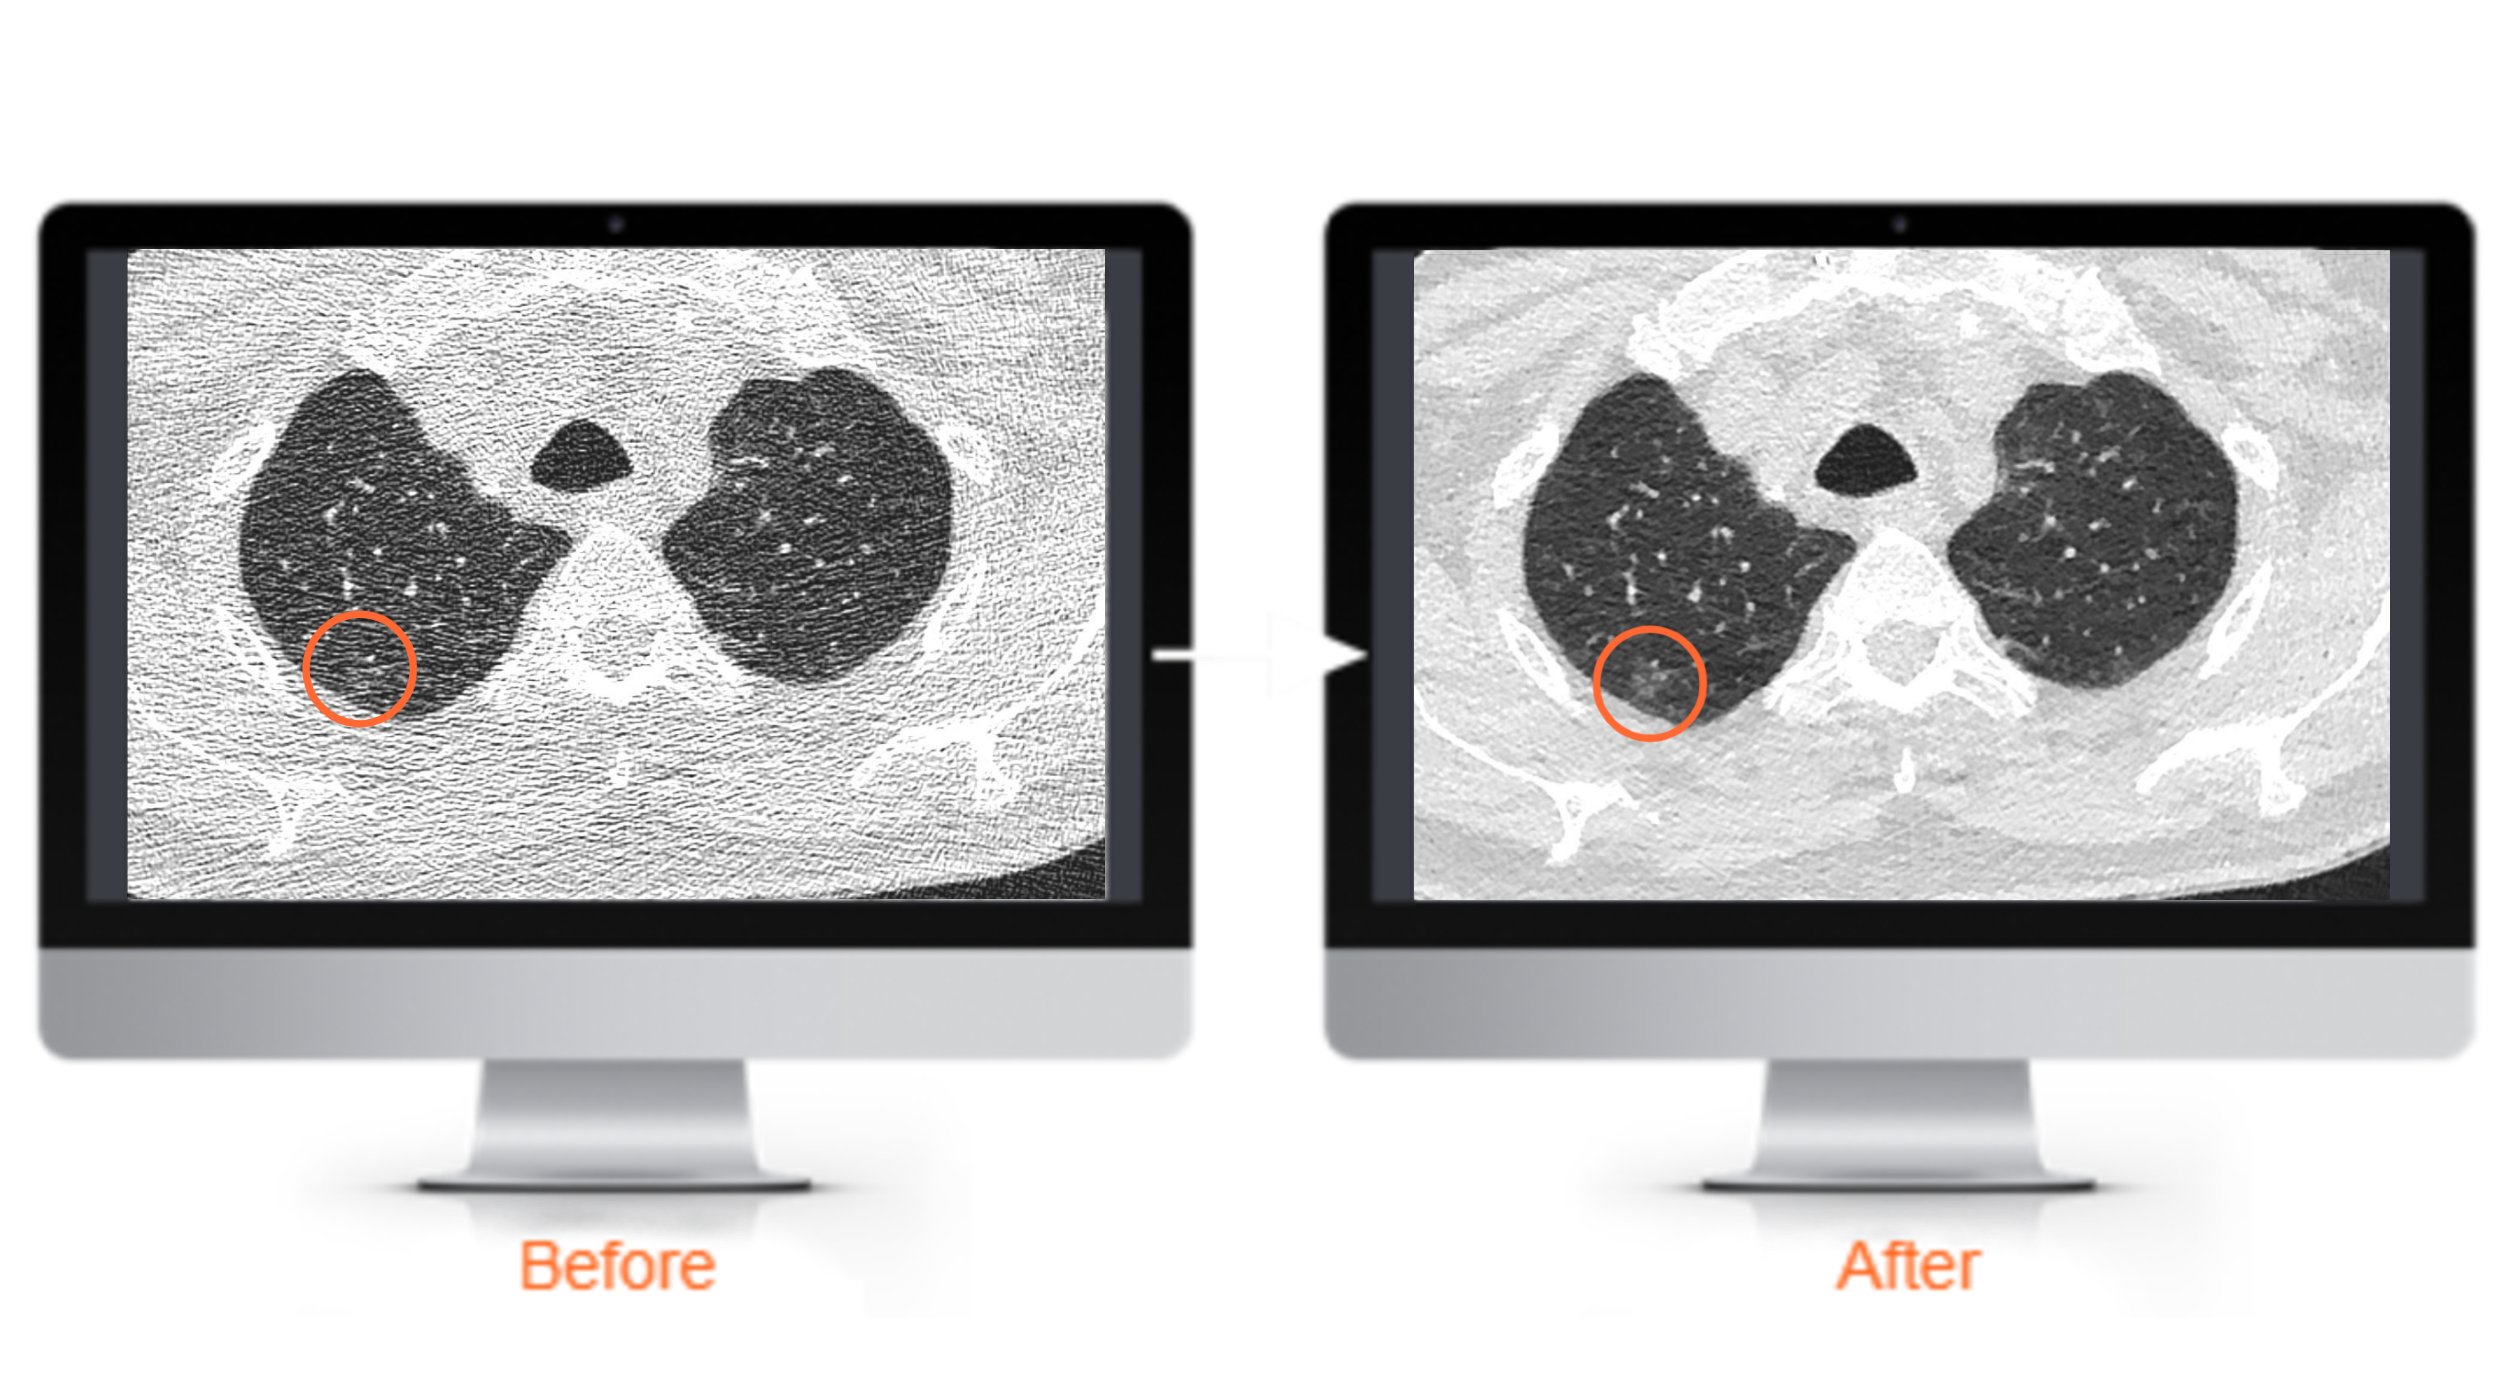 Image of two computers showing the comparison of traditional imaging and AlgoMedica deep learning reconstruction technology.